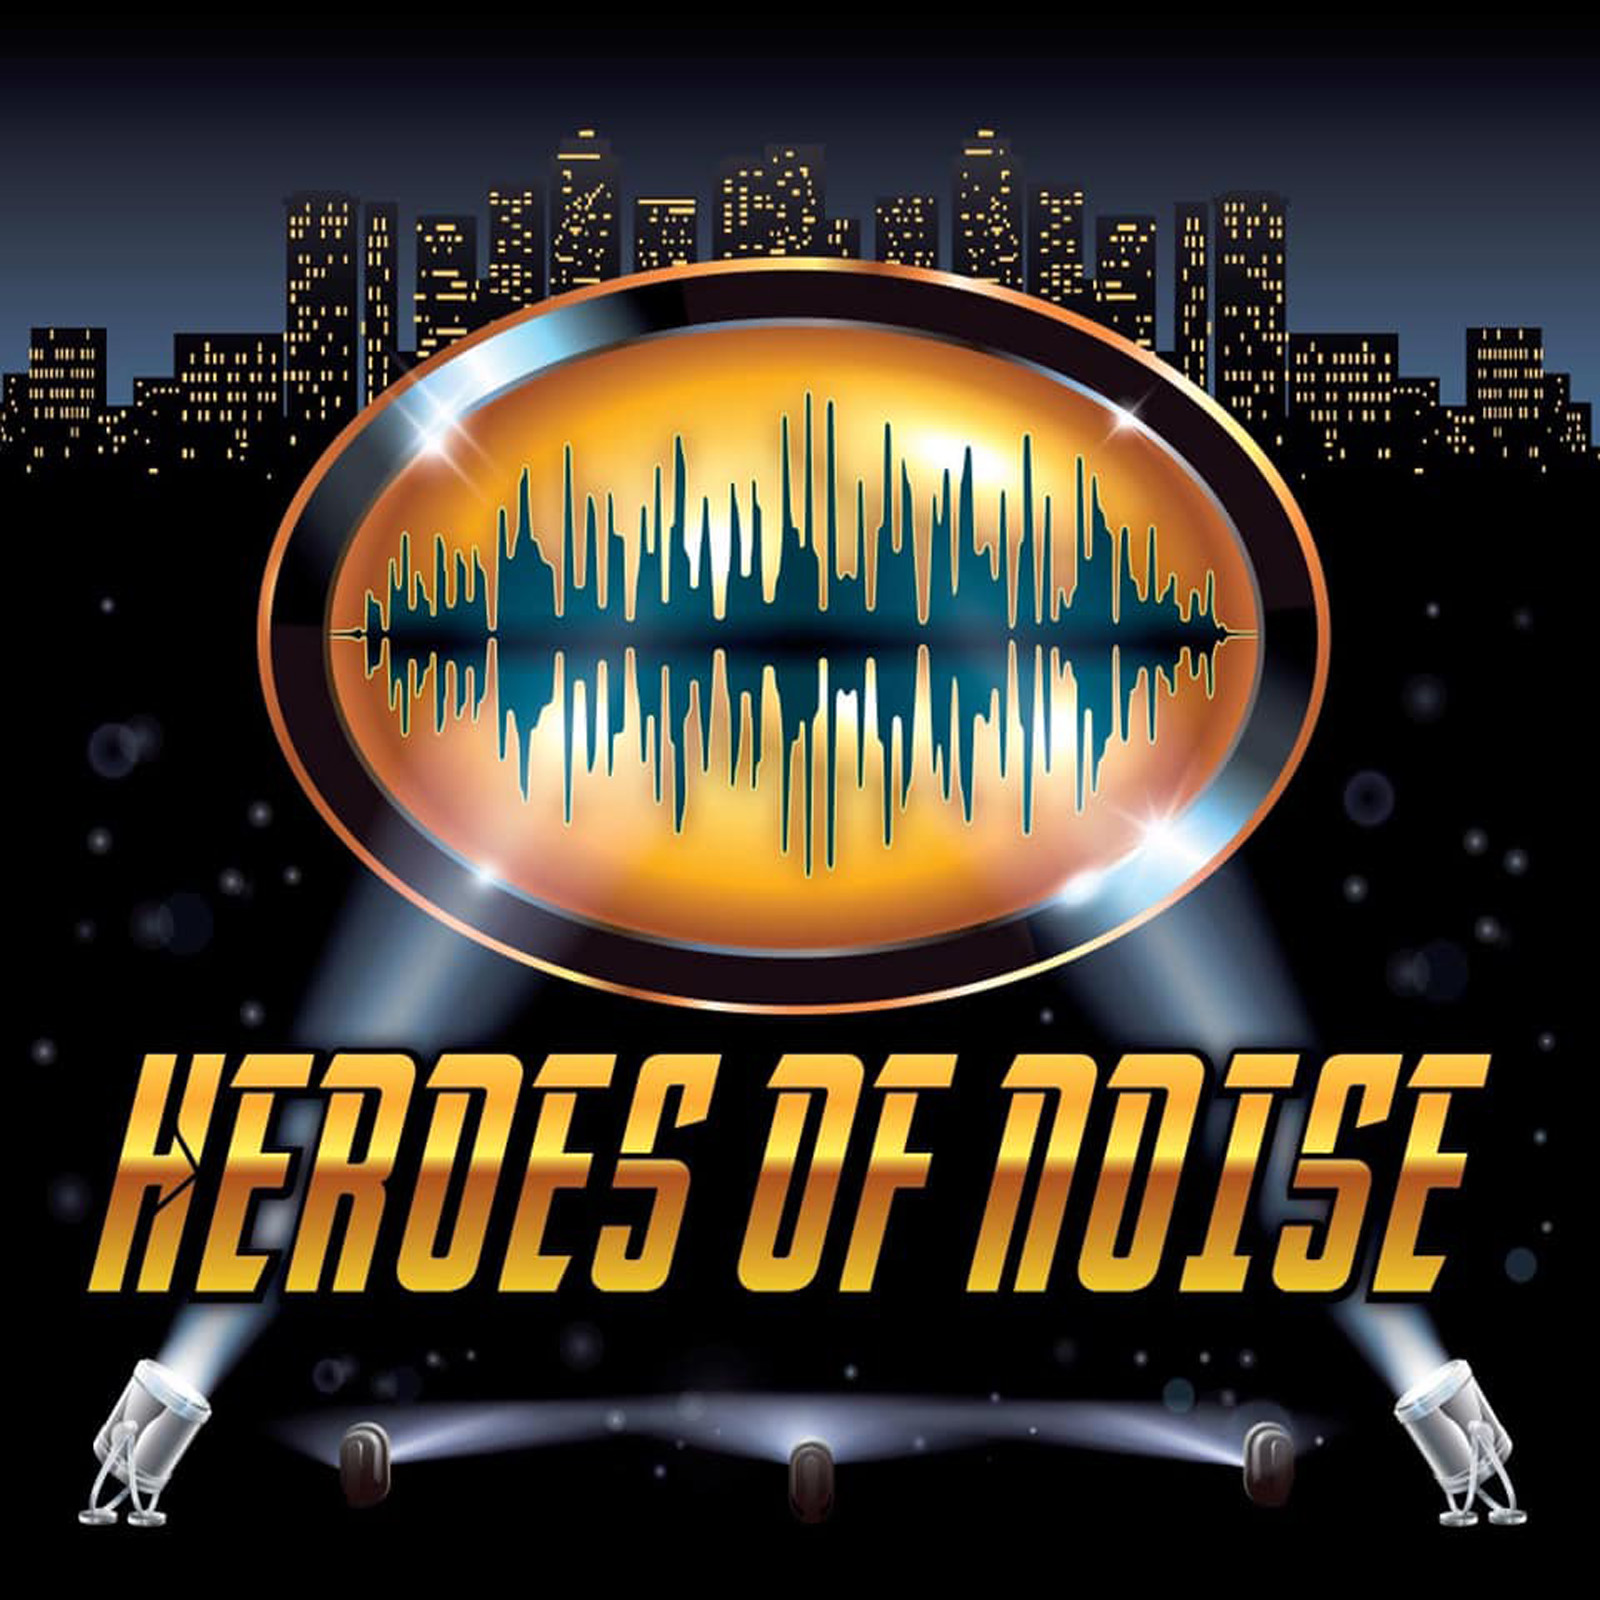 Heroes of Noise show art